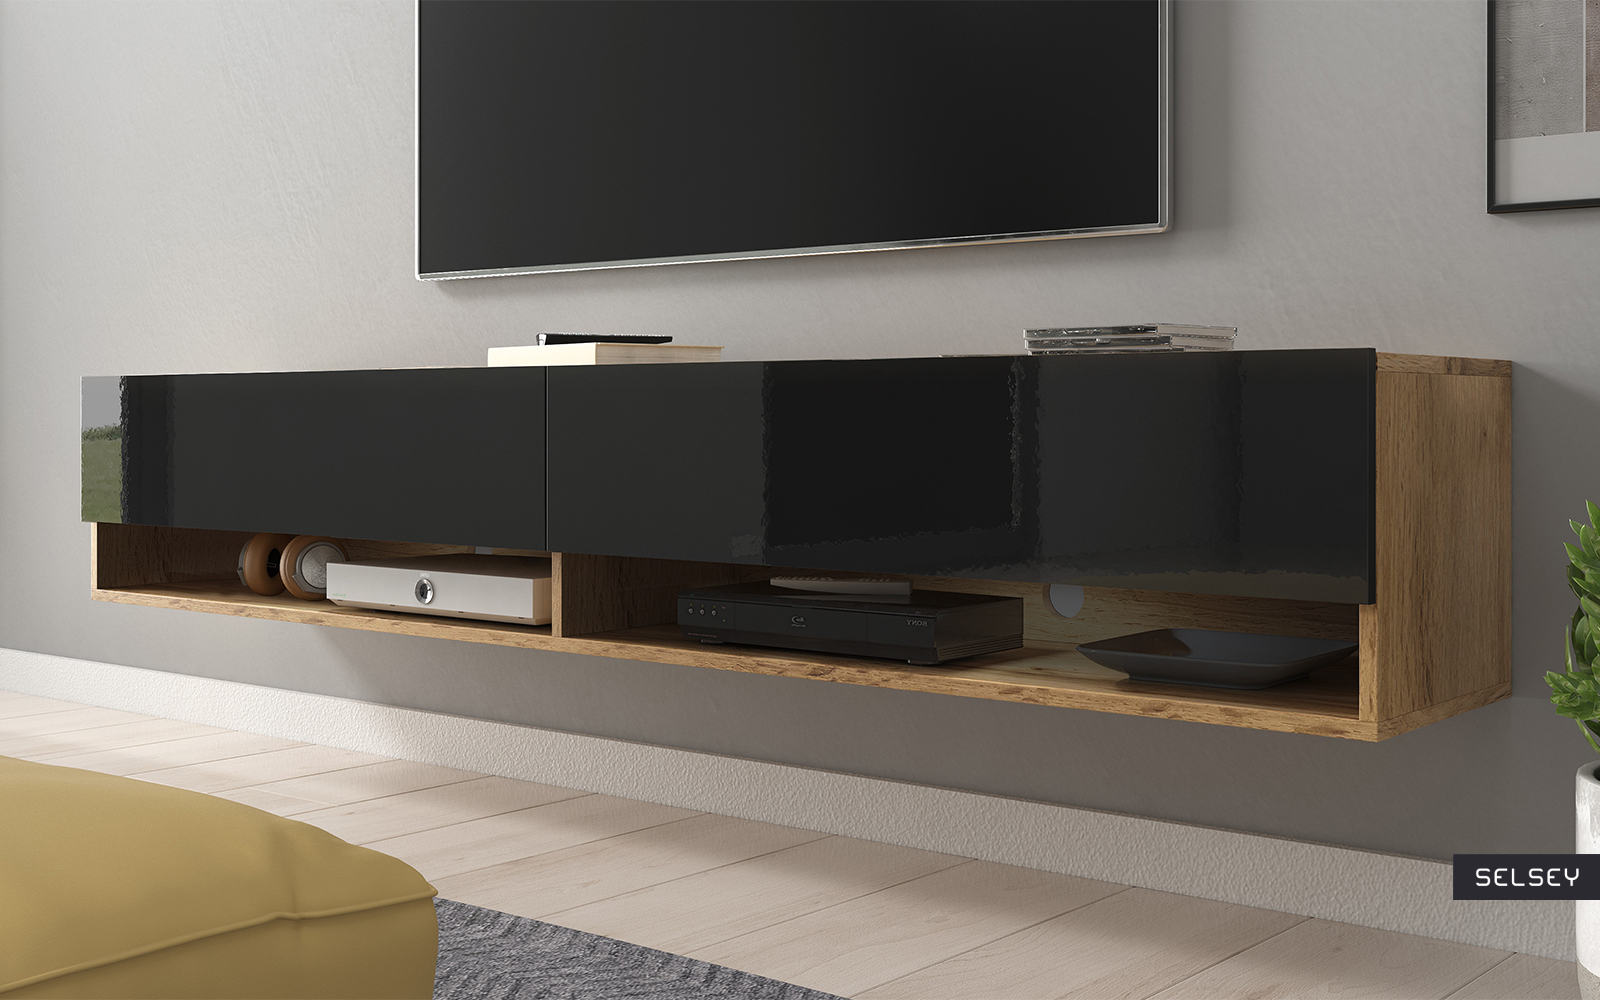 Wander Floating Tv Stand 180 Cm Selsey